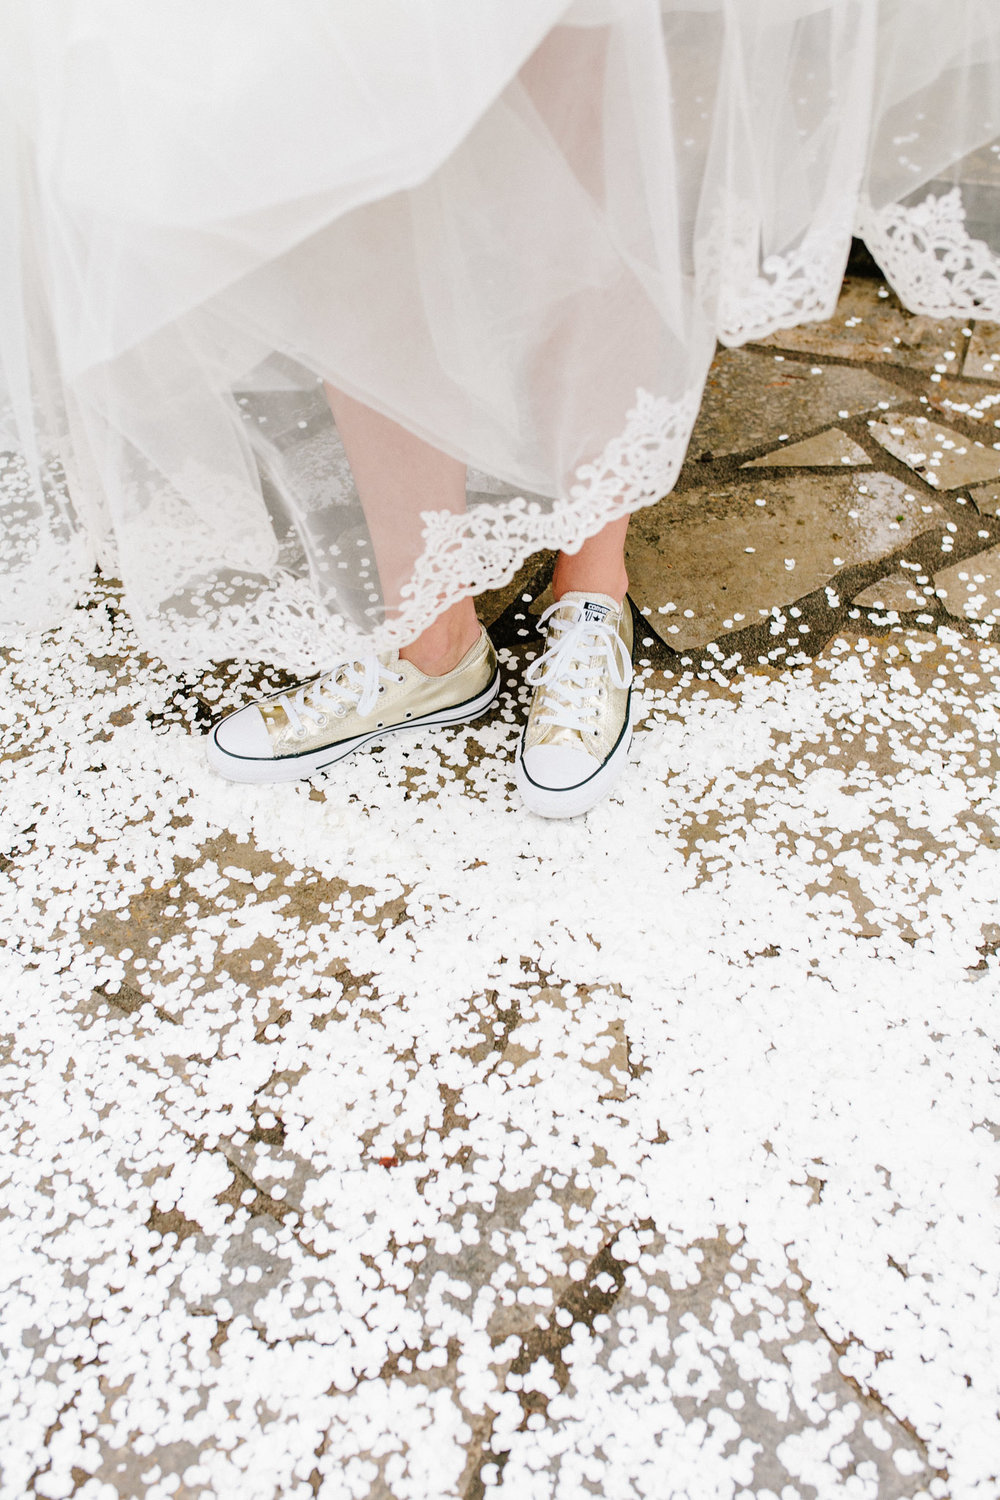 Nordhausen-Harz-Hochzeit-Pia-Anna-Christian-Wedding-Photography-LM-61.jpg